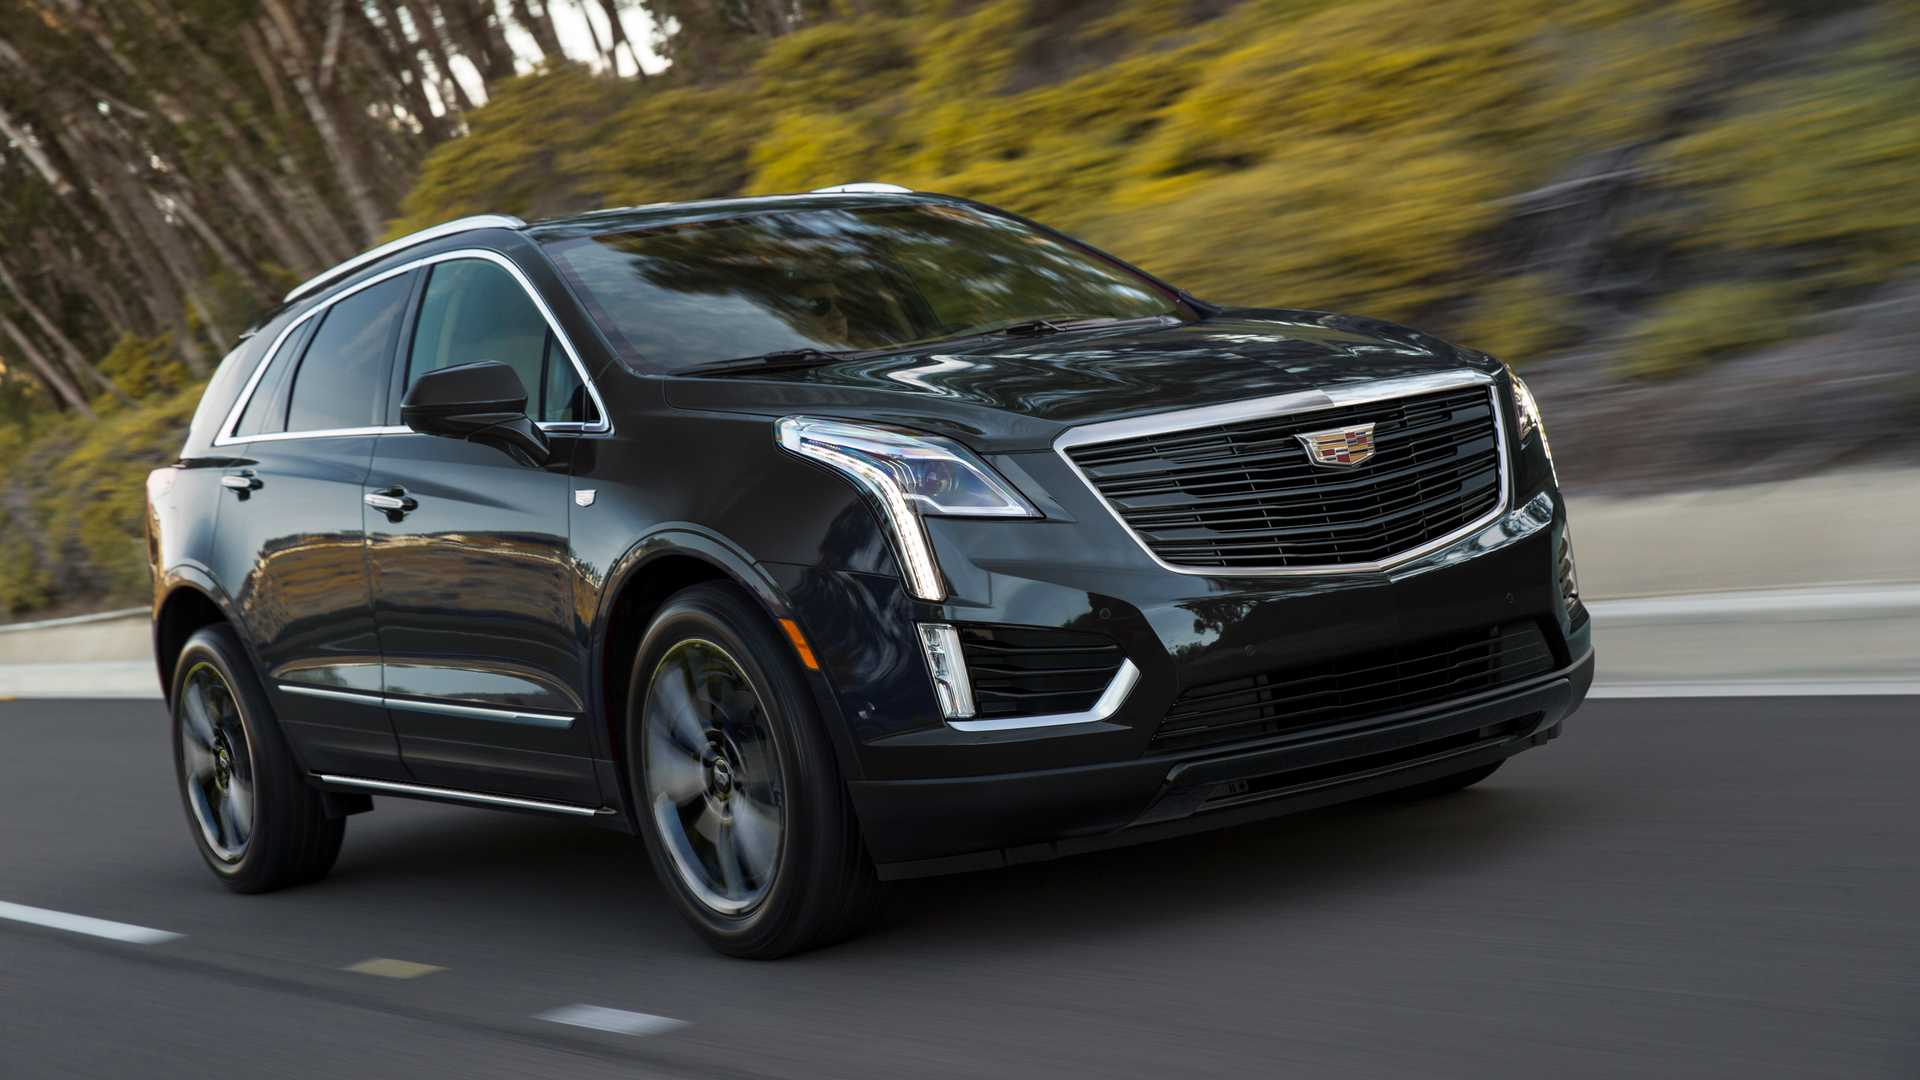 75 All New 2019 Spy Shots Cadillac Xt5 Price Design And Review